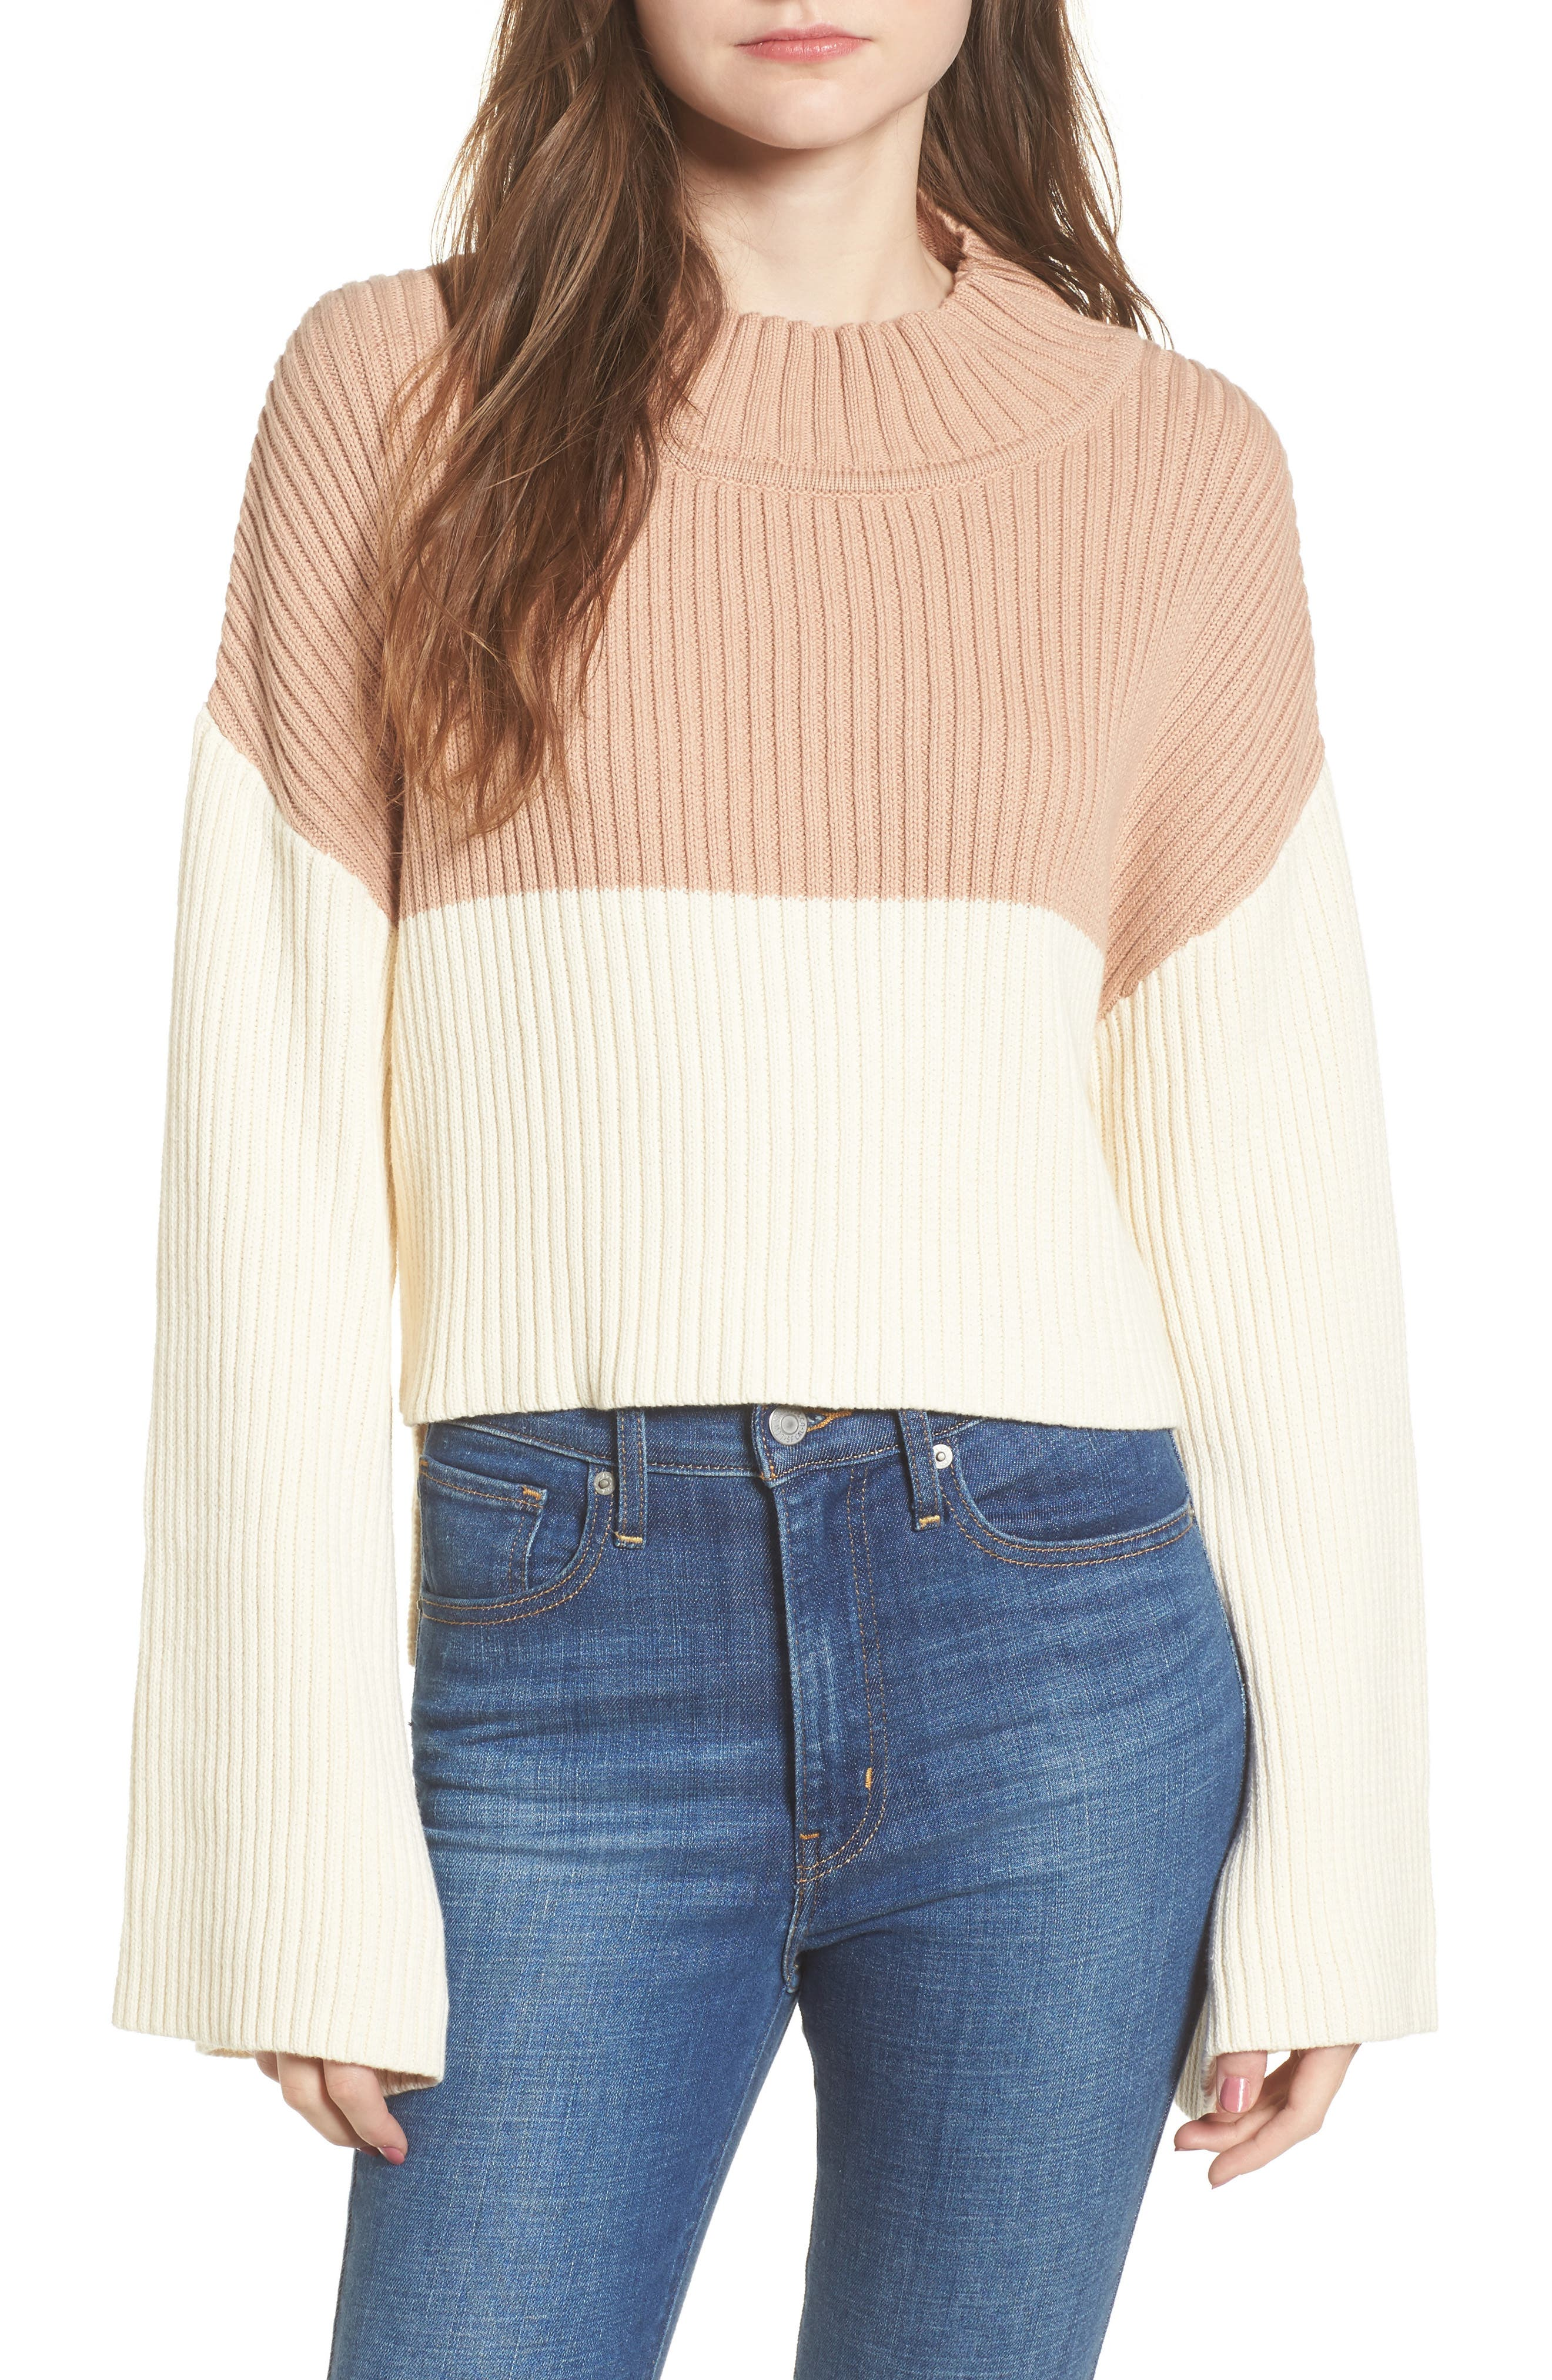 Somedays Lovin Like a Melody Colorblock Crop Sweater